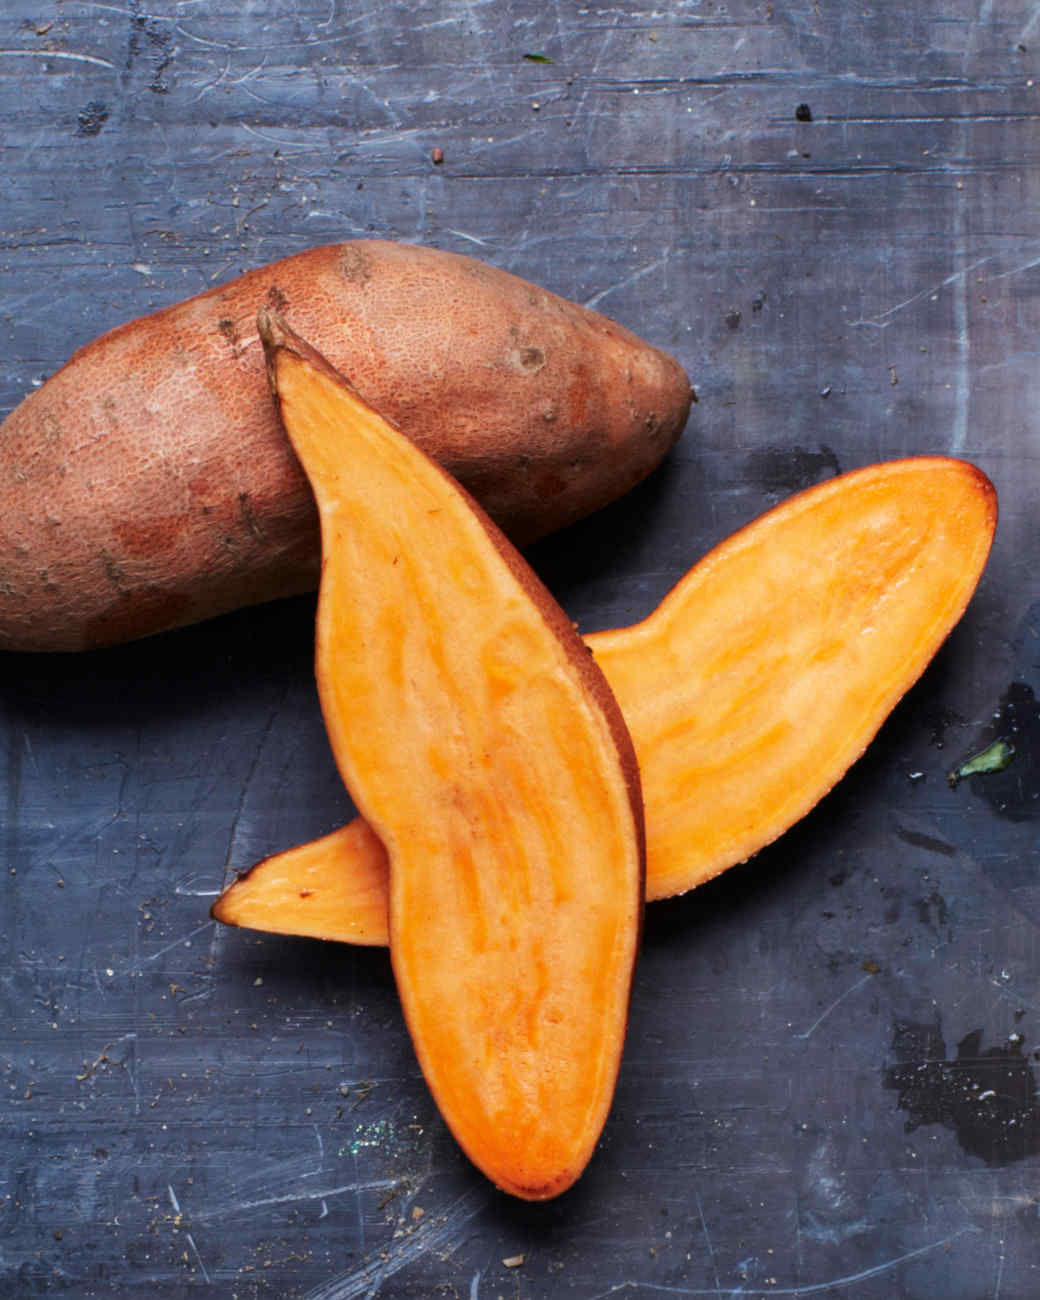 sweet-potato-roots-tubers-202-d110486.jpg